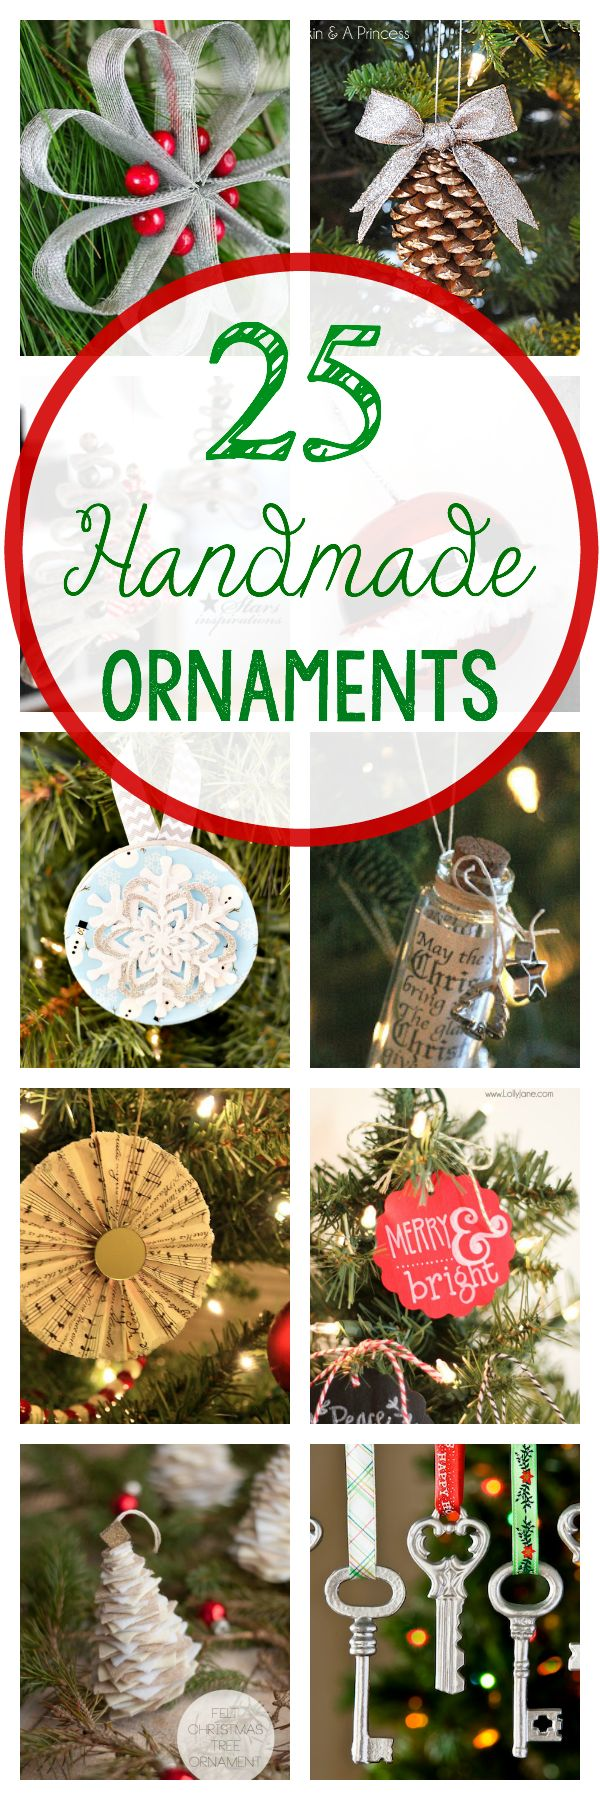 Here are 25 handmade Christmas ornaments that you can make and decorate with this holiday season.